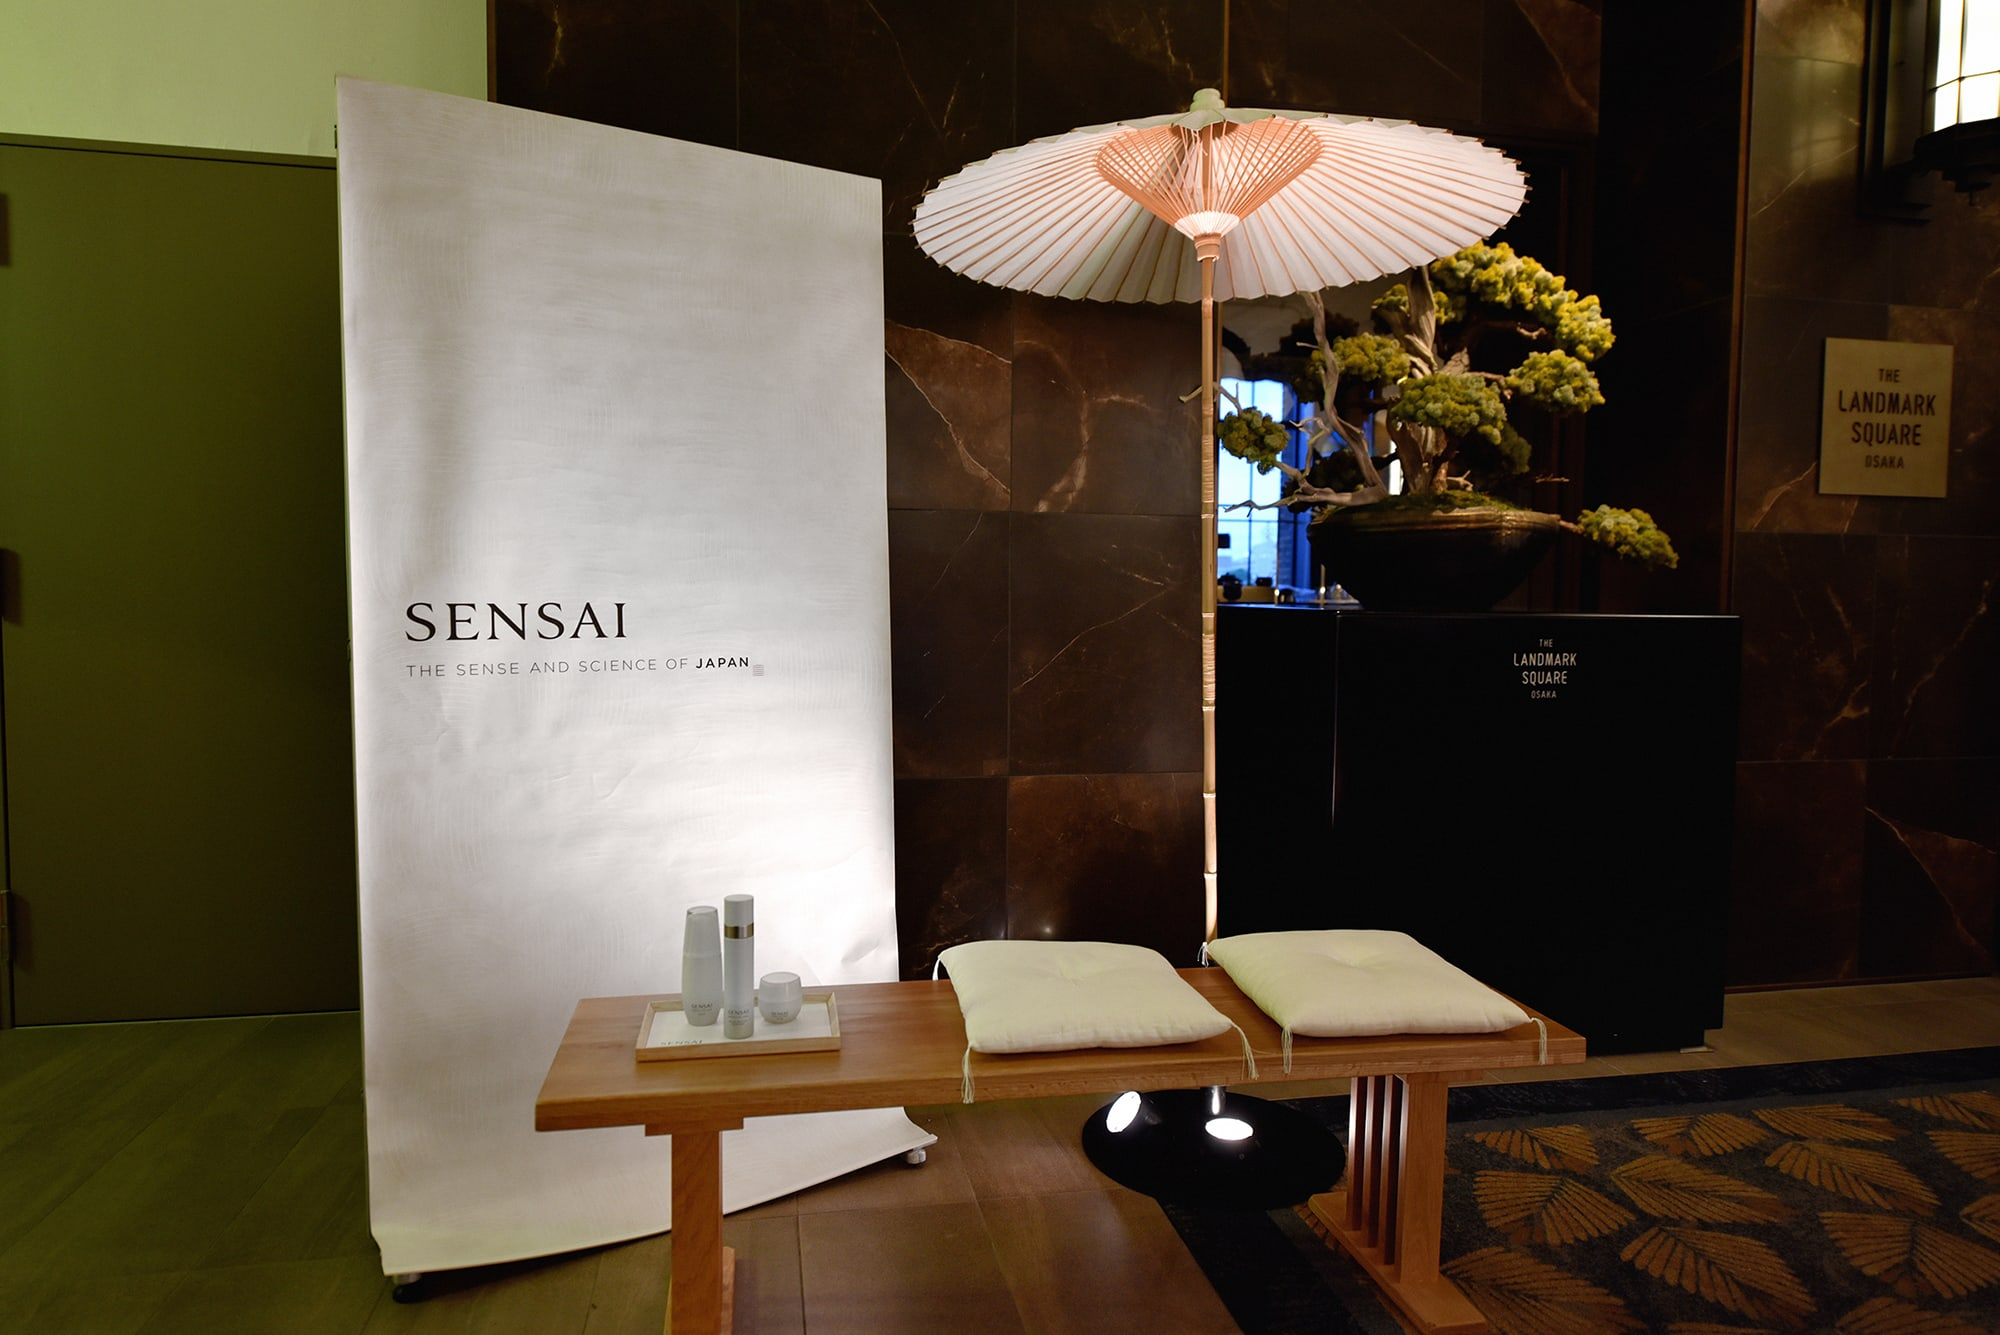 SENSAI booth at the venue. The products were displayed using open-air seats for tea ceremonies.